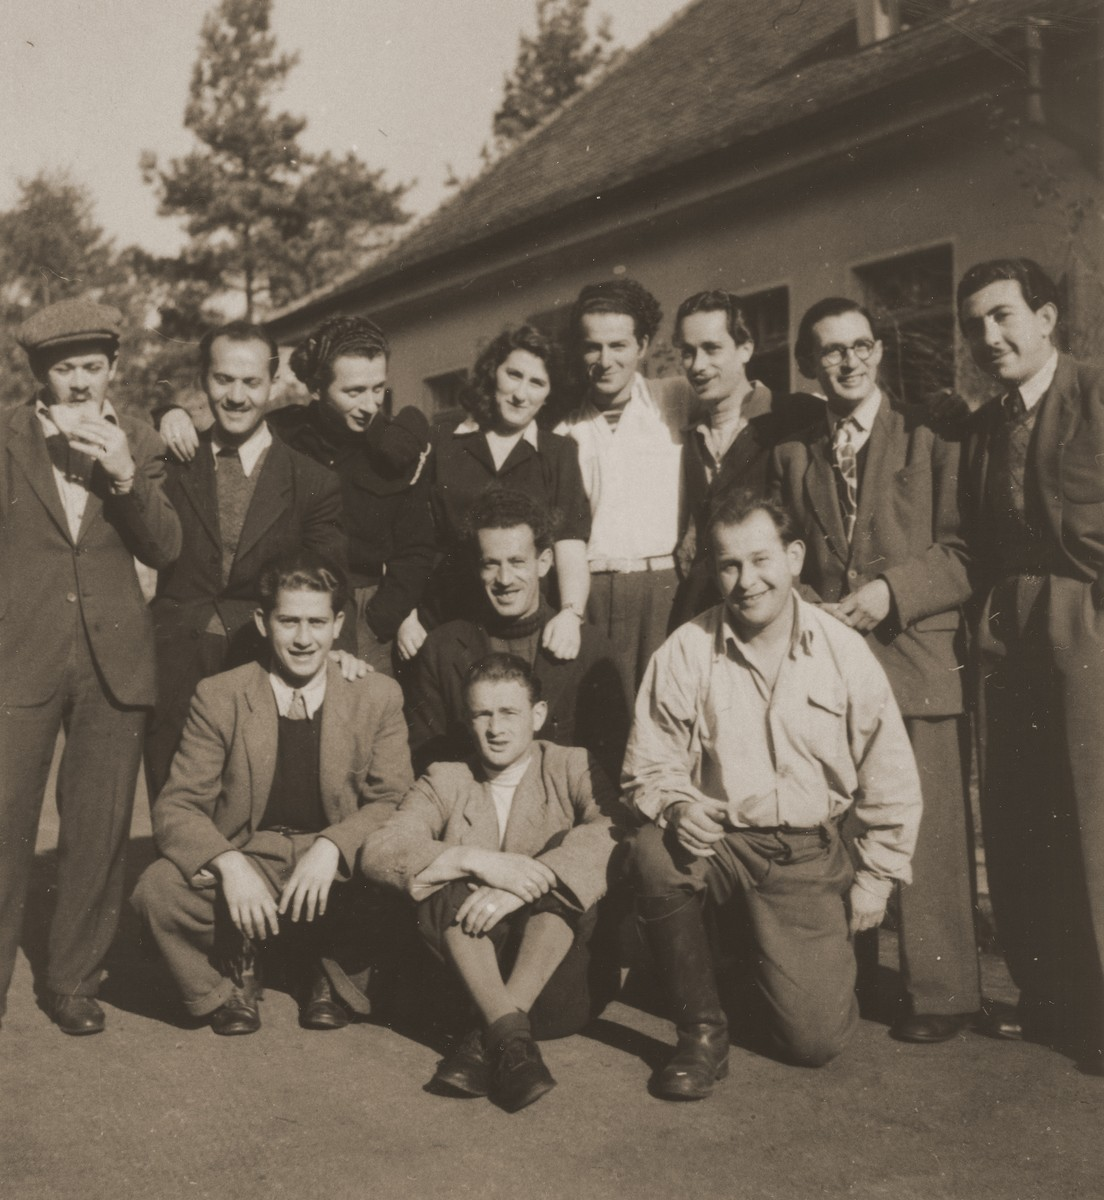 Group portrait of members of the Kibbutz Haghibor hachshara in the Bergen-Belsen DP camp.